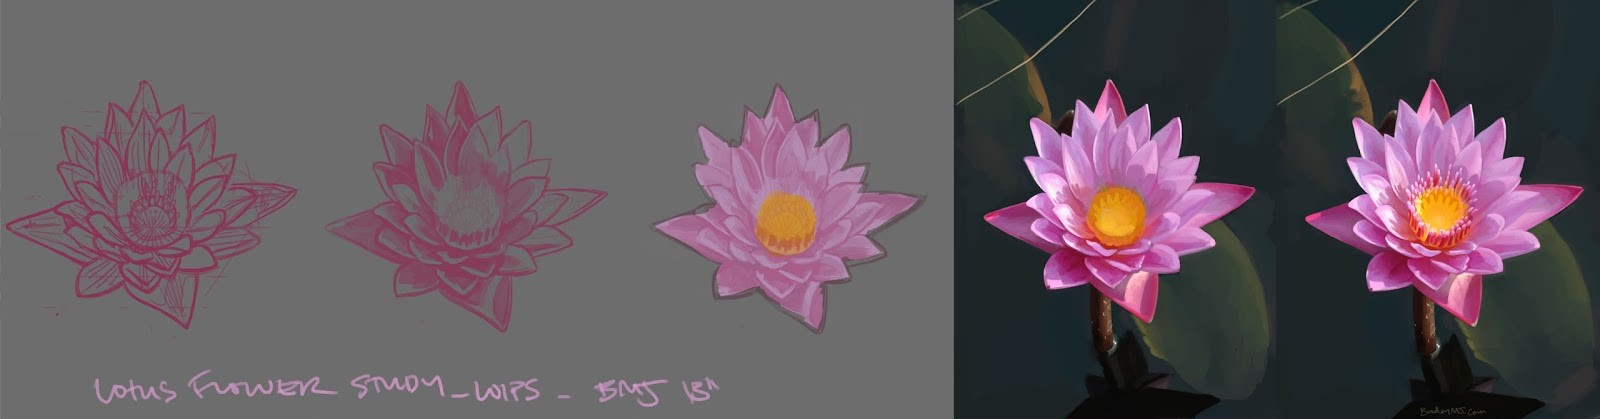 Bradley morgan johnson lotus flower wips